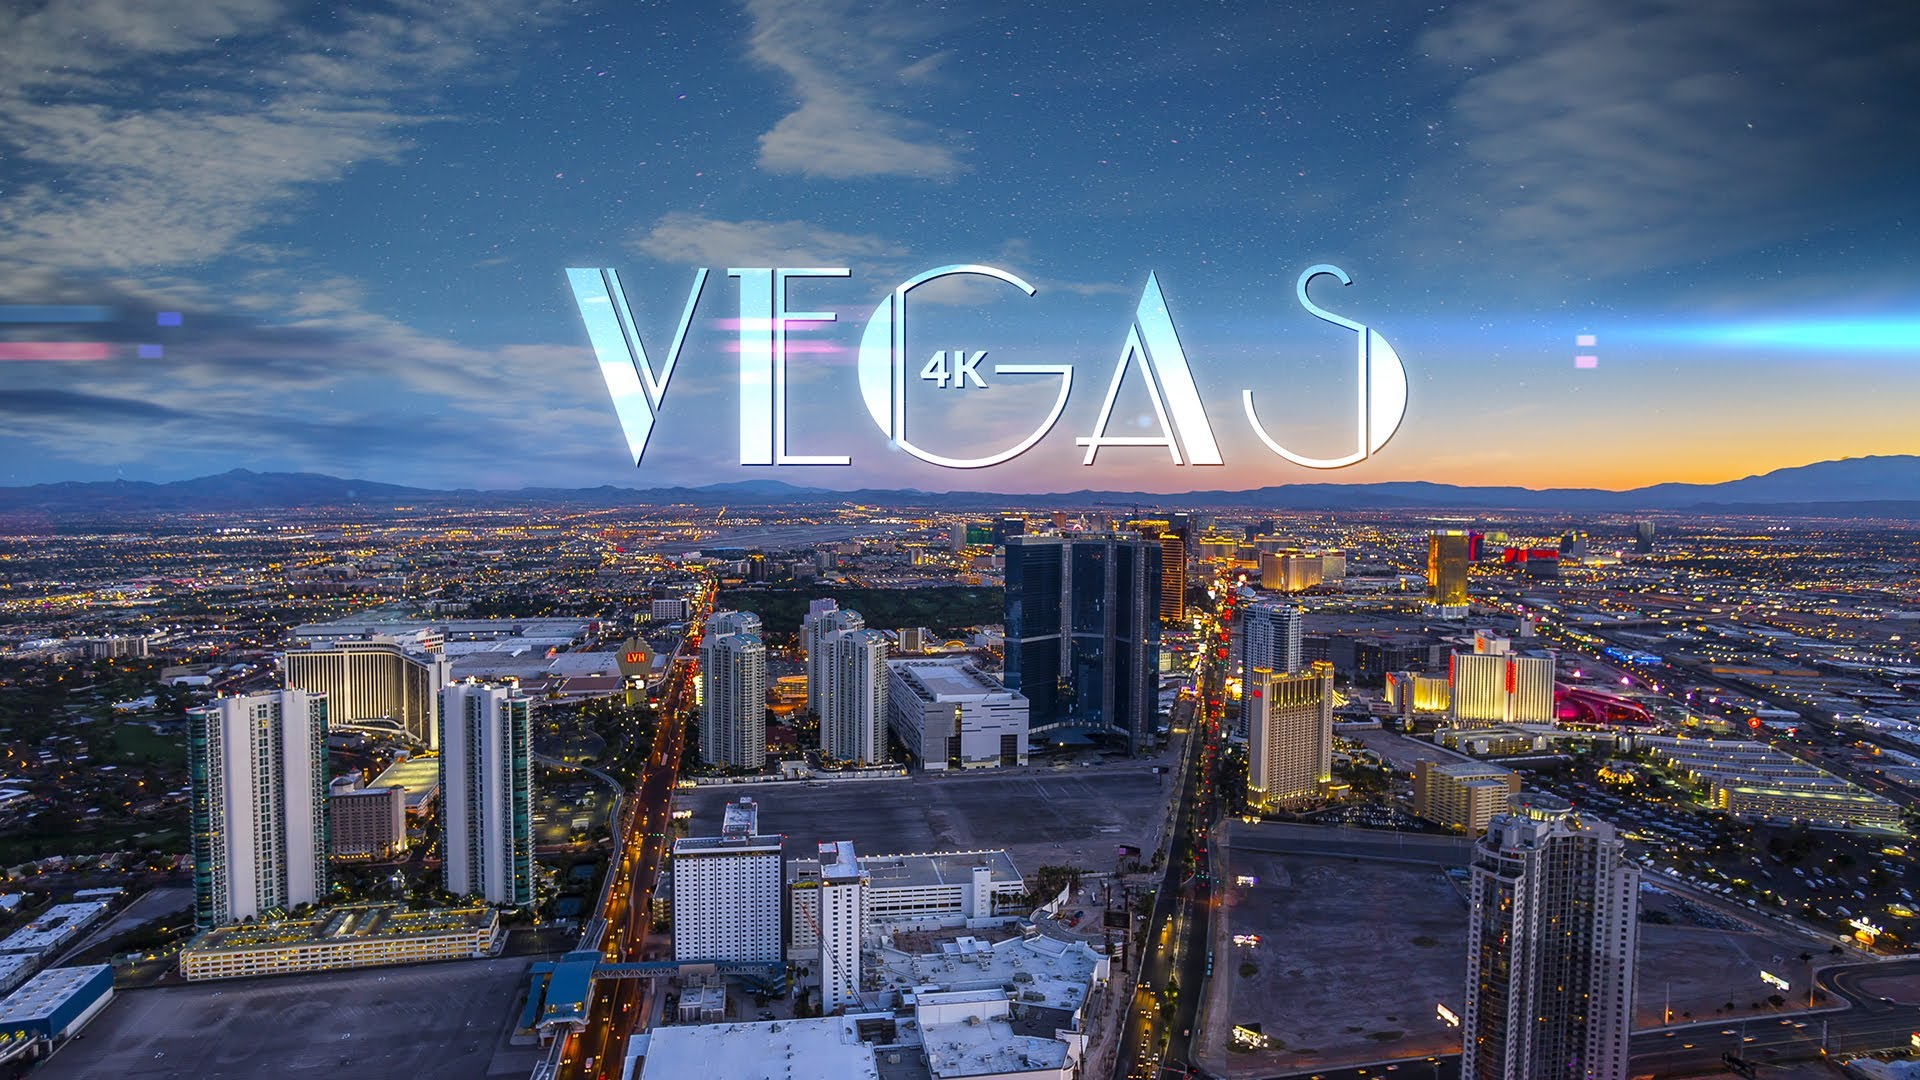 vegas 4k', an ultra high-definition time-lapse video of sin city at